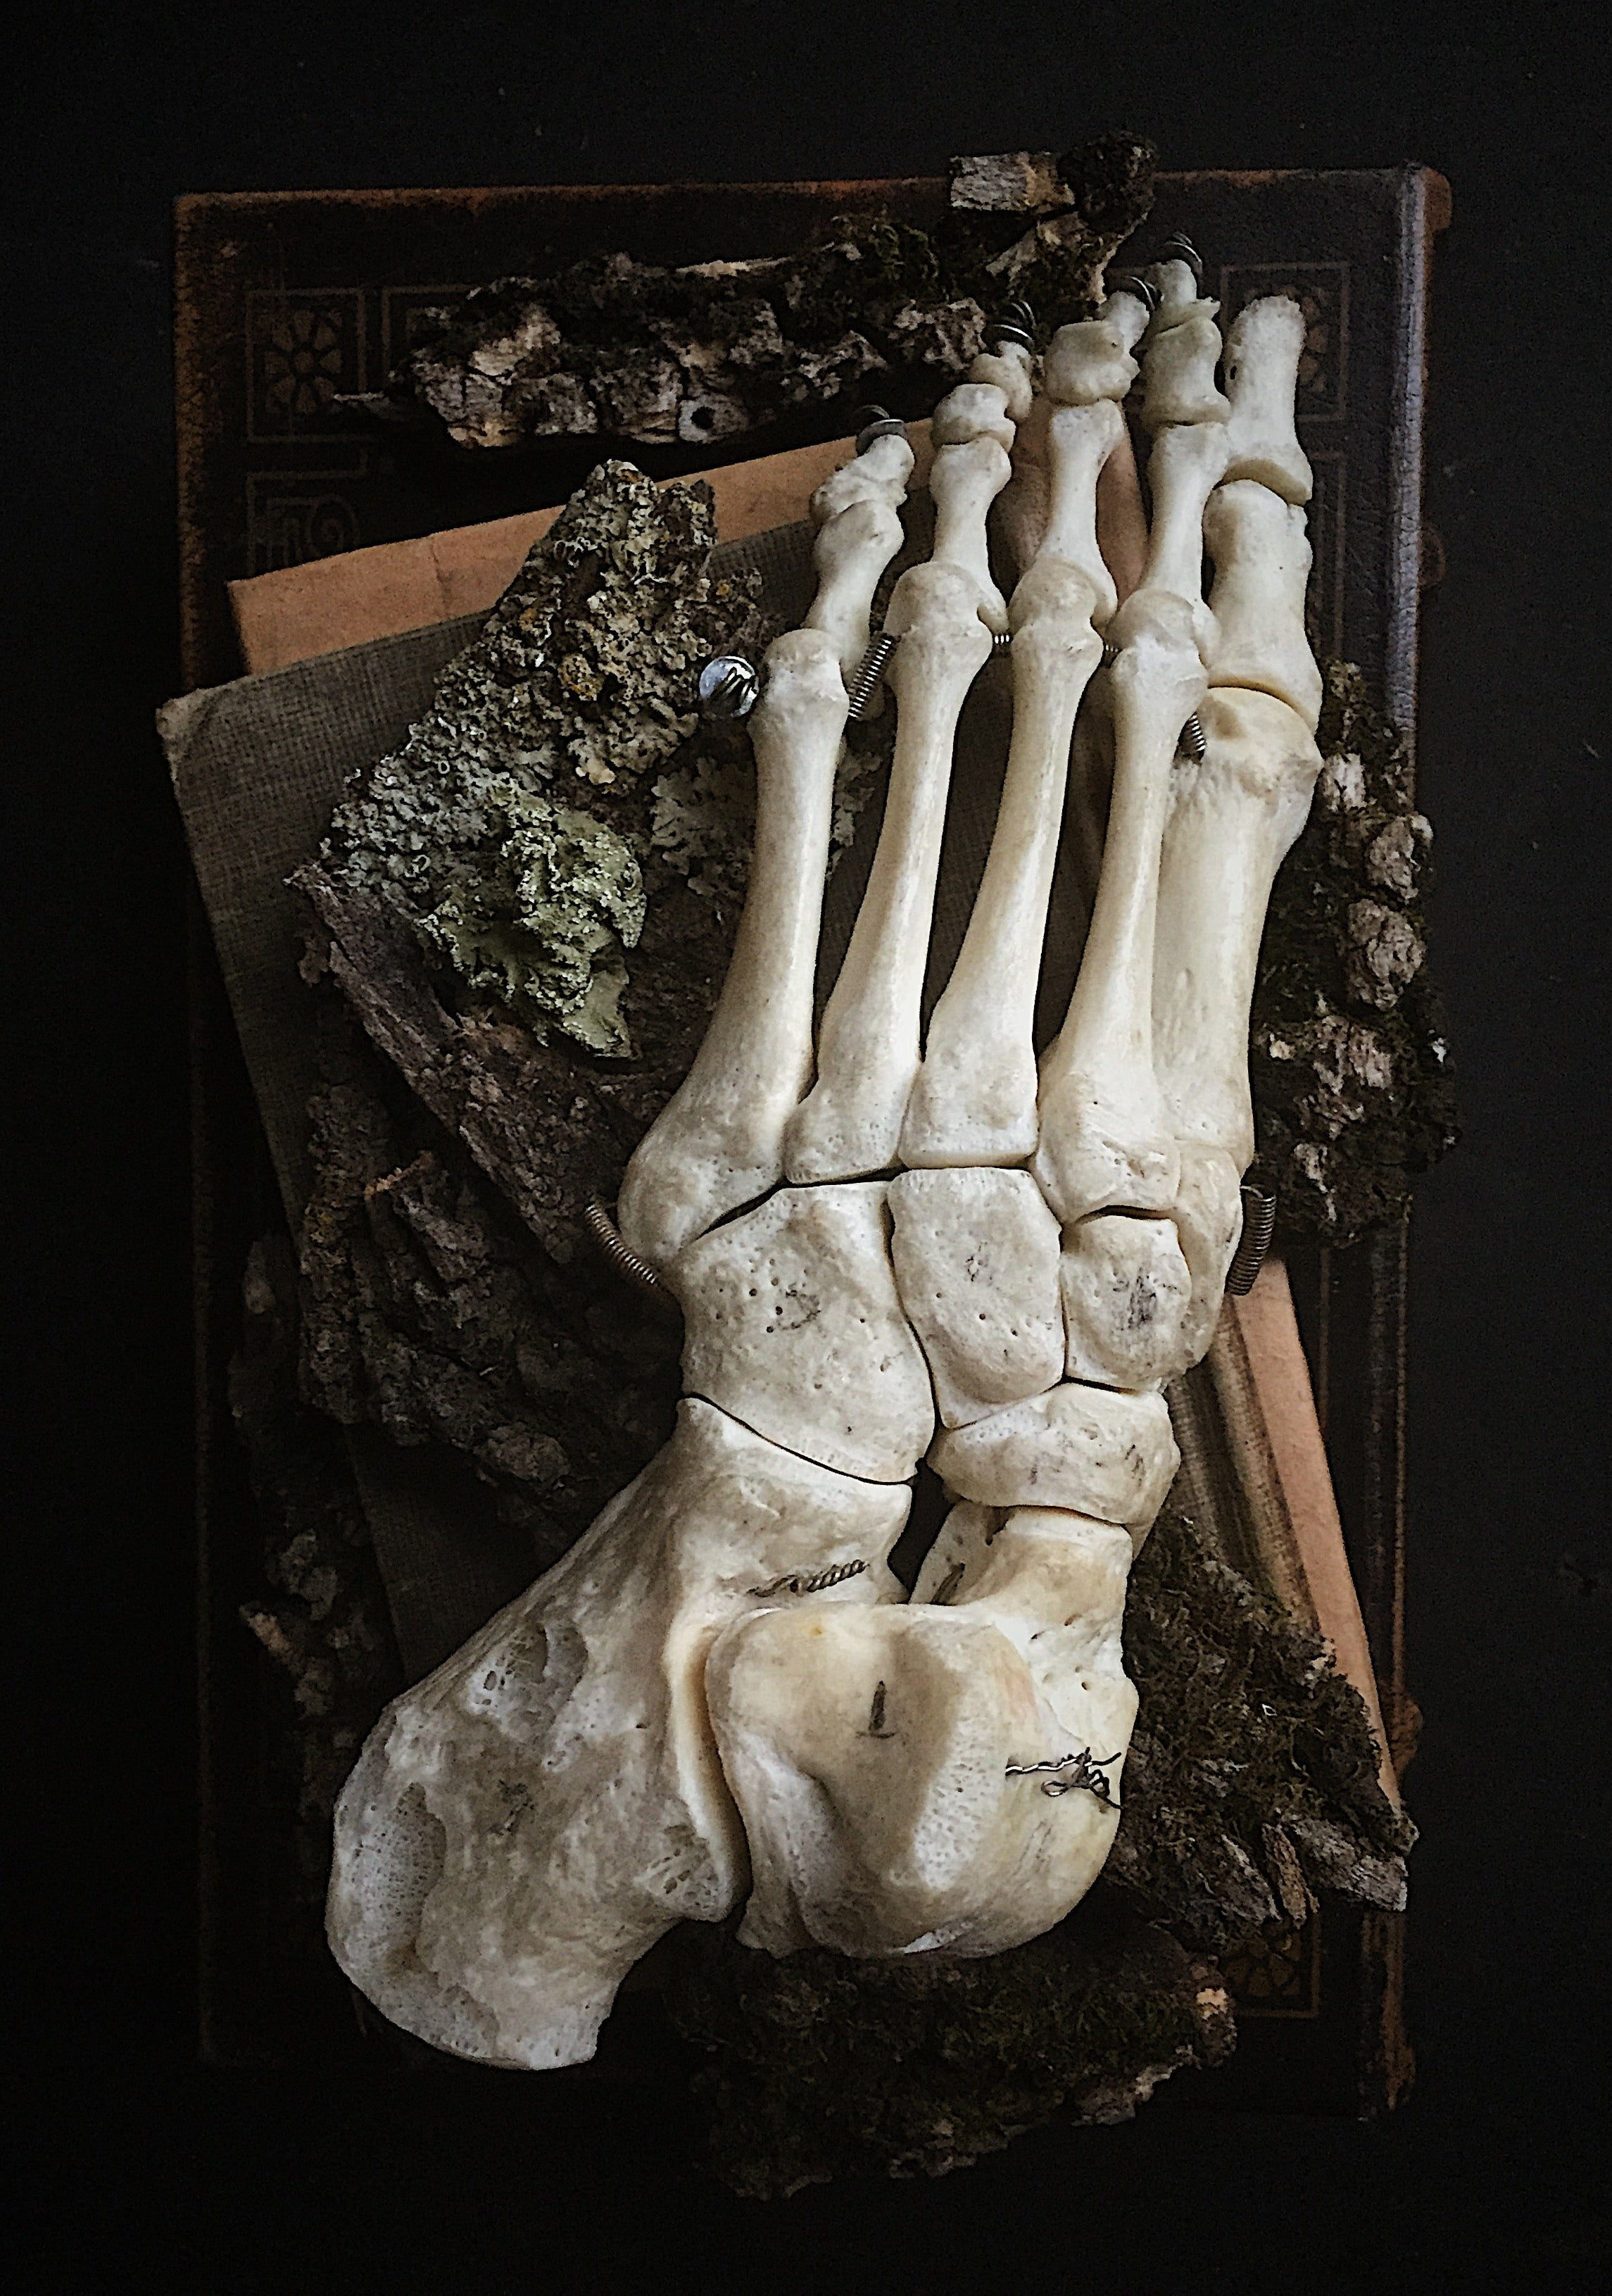 SB 34, Real Articulated Human Foot